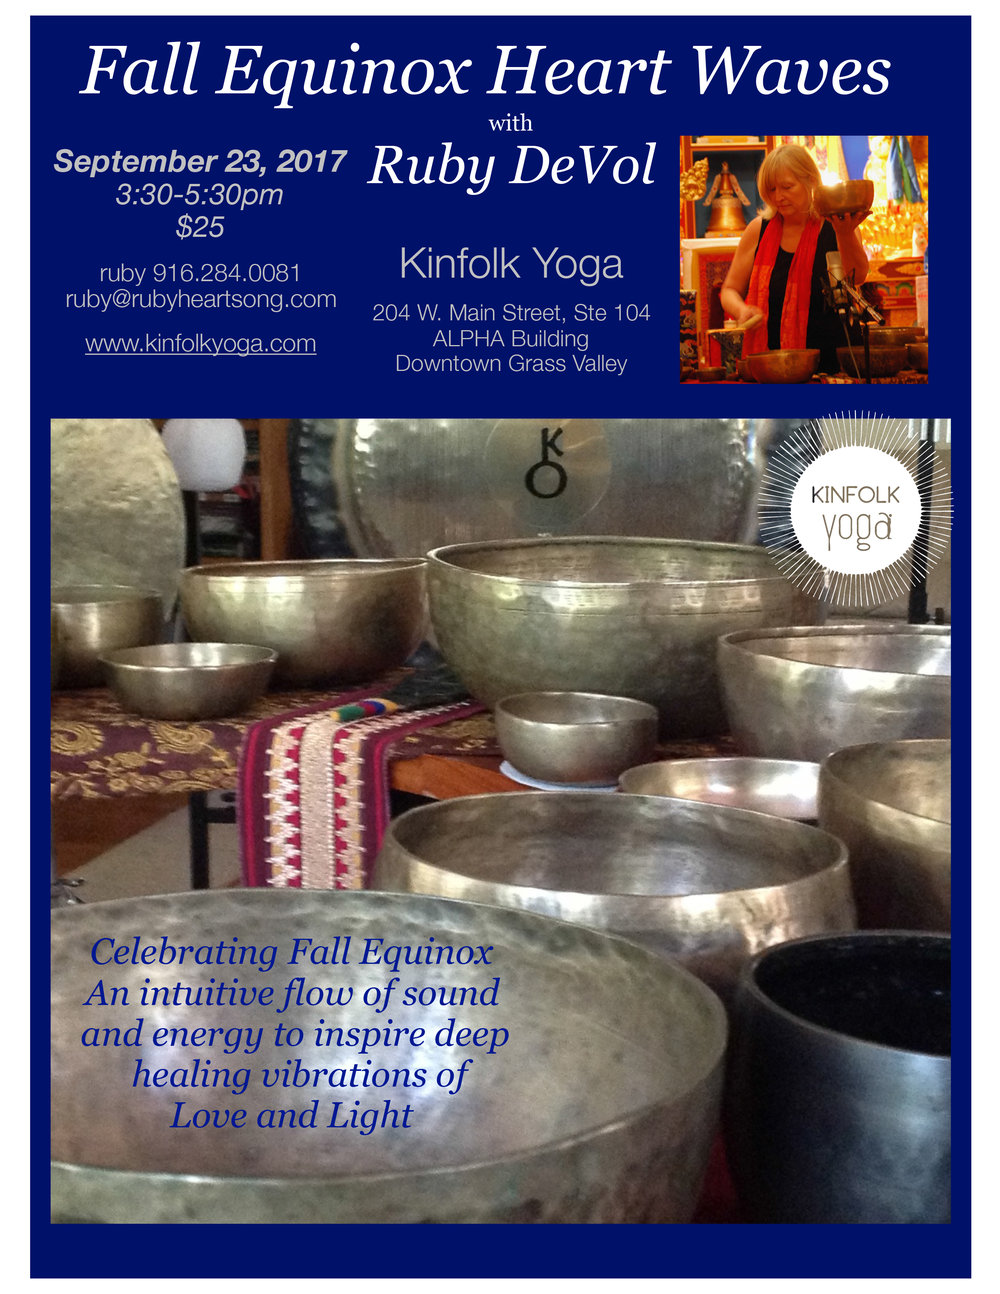 Fall Equinox Yoga Nevada City Kinfolk Yoga